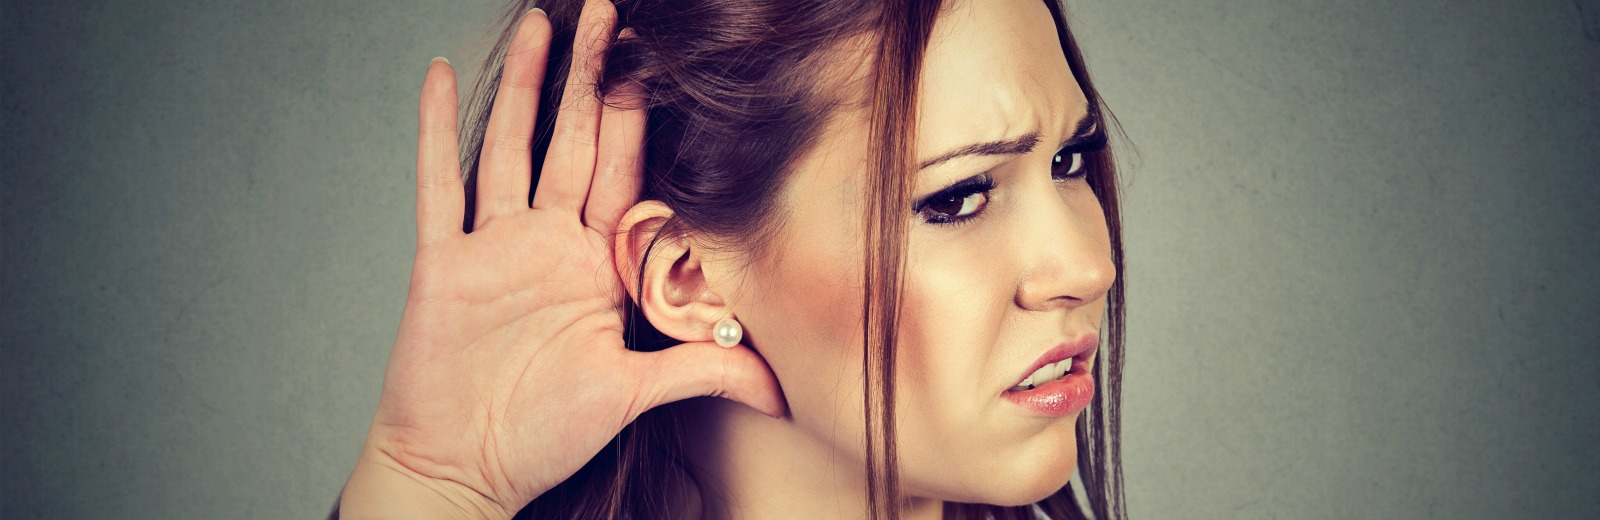 Hearing Loss: 4 Warning Signs You Shouldn't Ignore